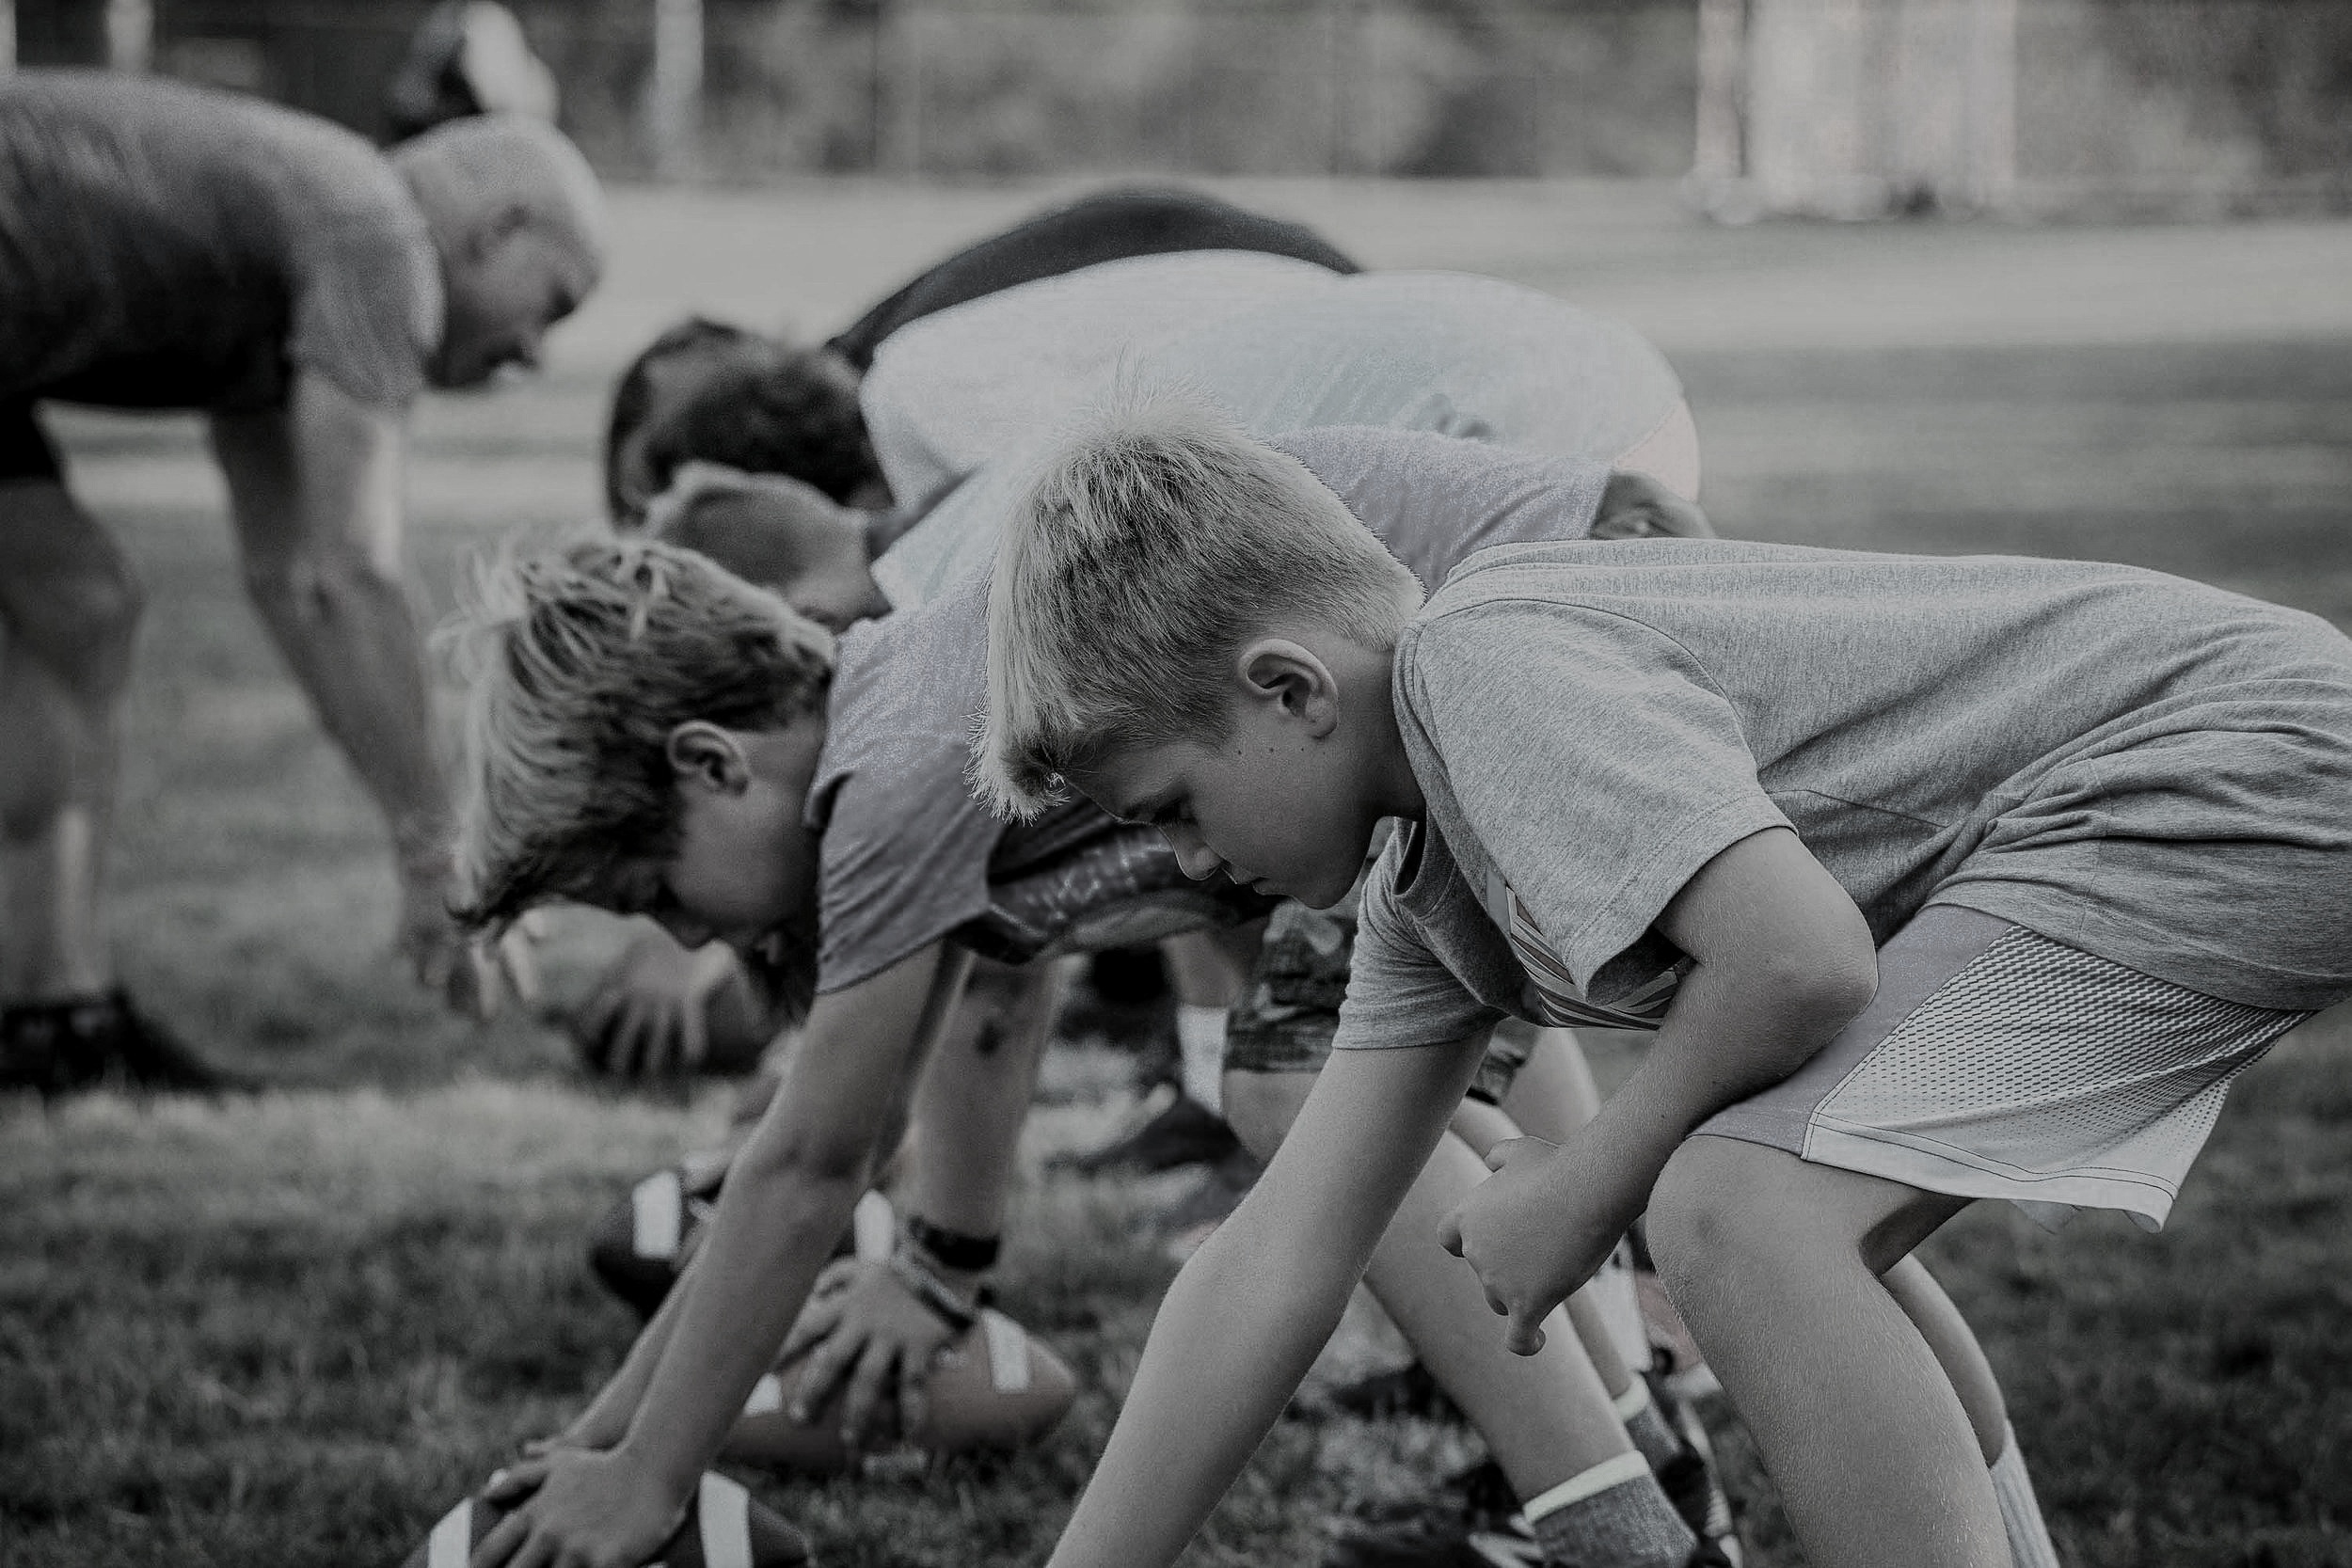 If given the chance, children will thrive, but with the declining rate of high-school athletes, it is critical to build programs that increase participation.